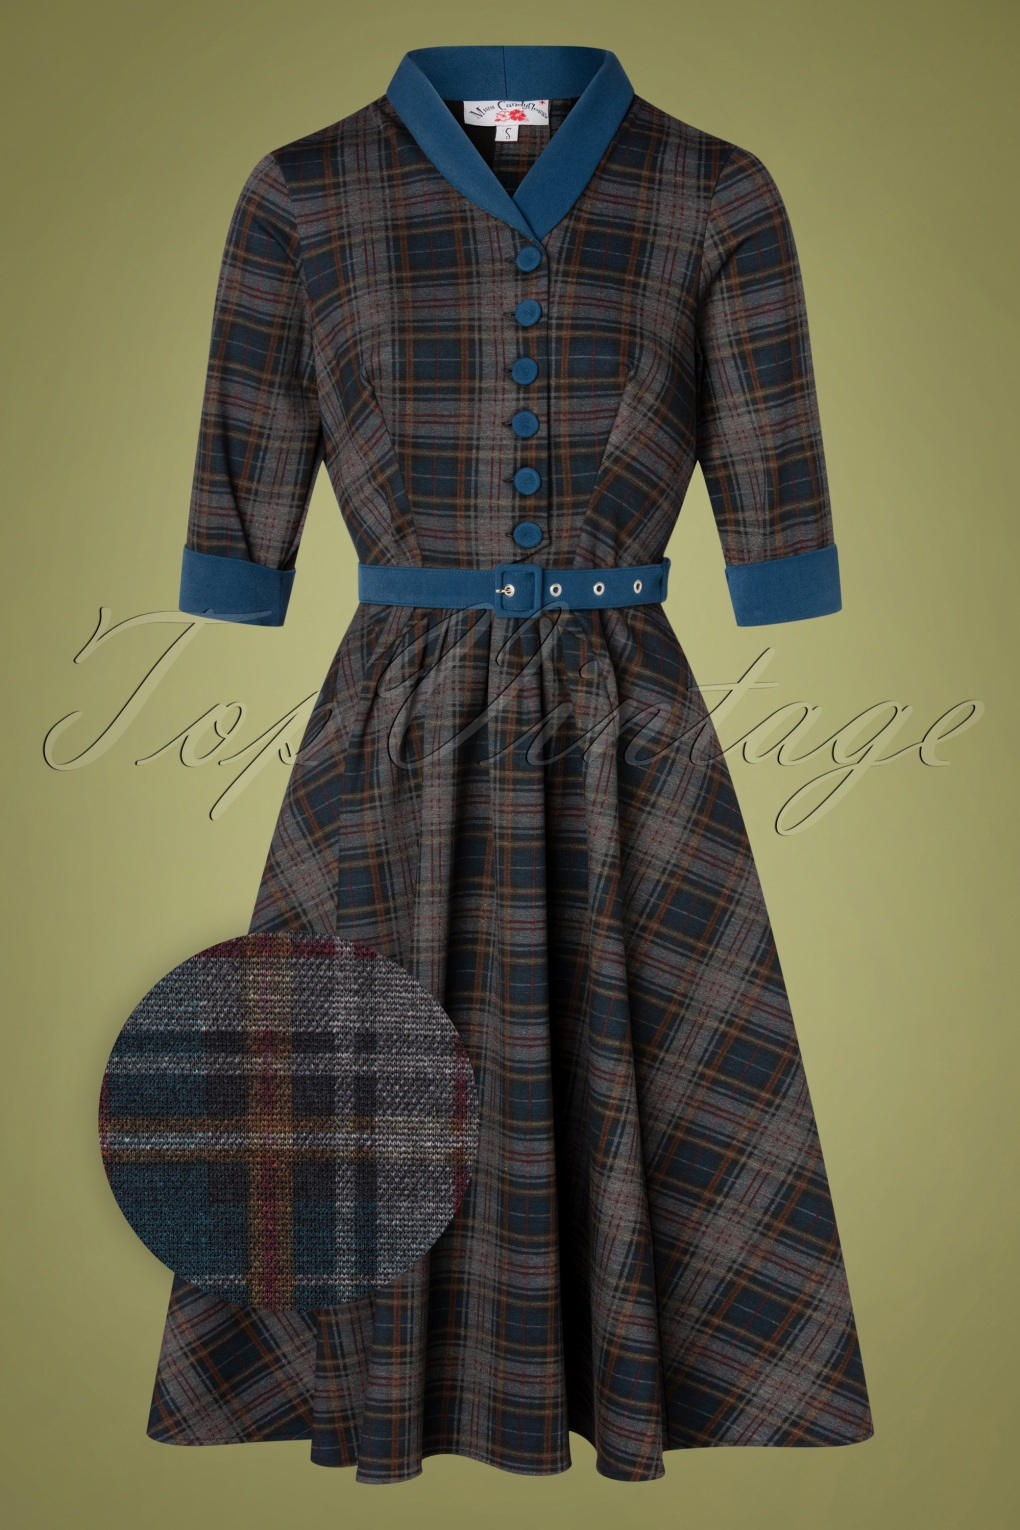 1940s Day Dress Styles, House Dresses TopVintage exclusive  40s Lily Teagan Tartan Swing Dress in Midnight Blue £113.33 AT vintagedancer.com